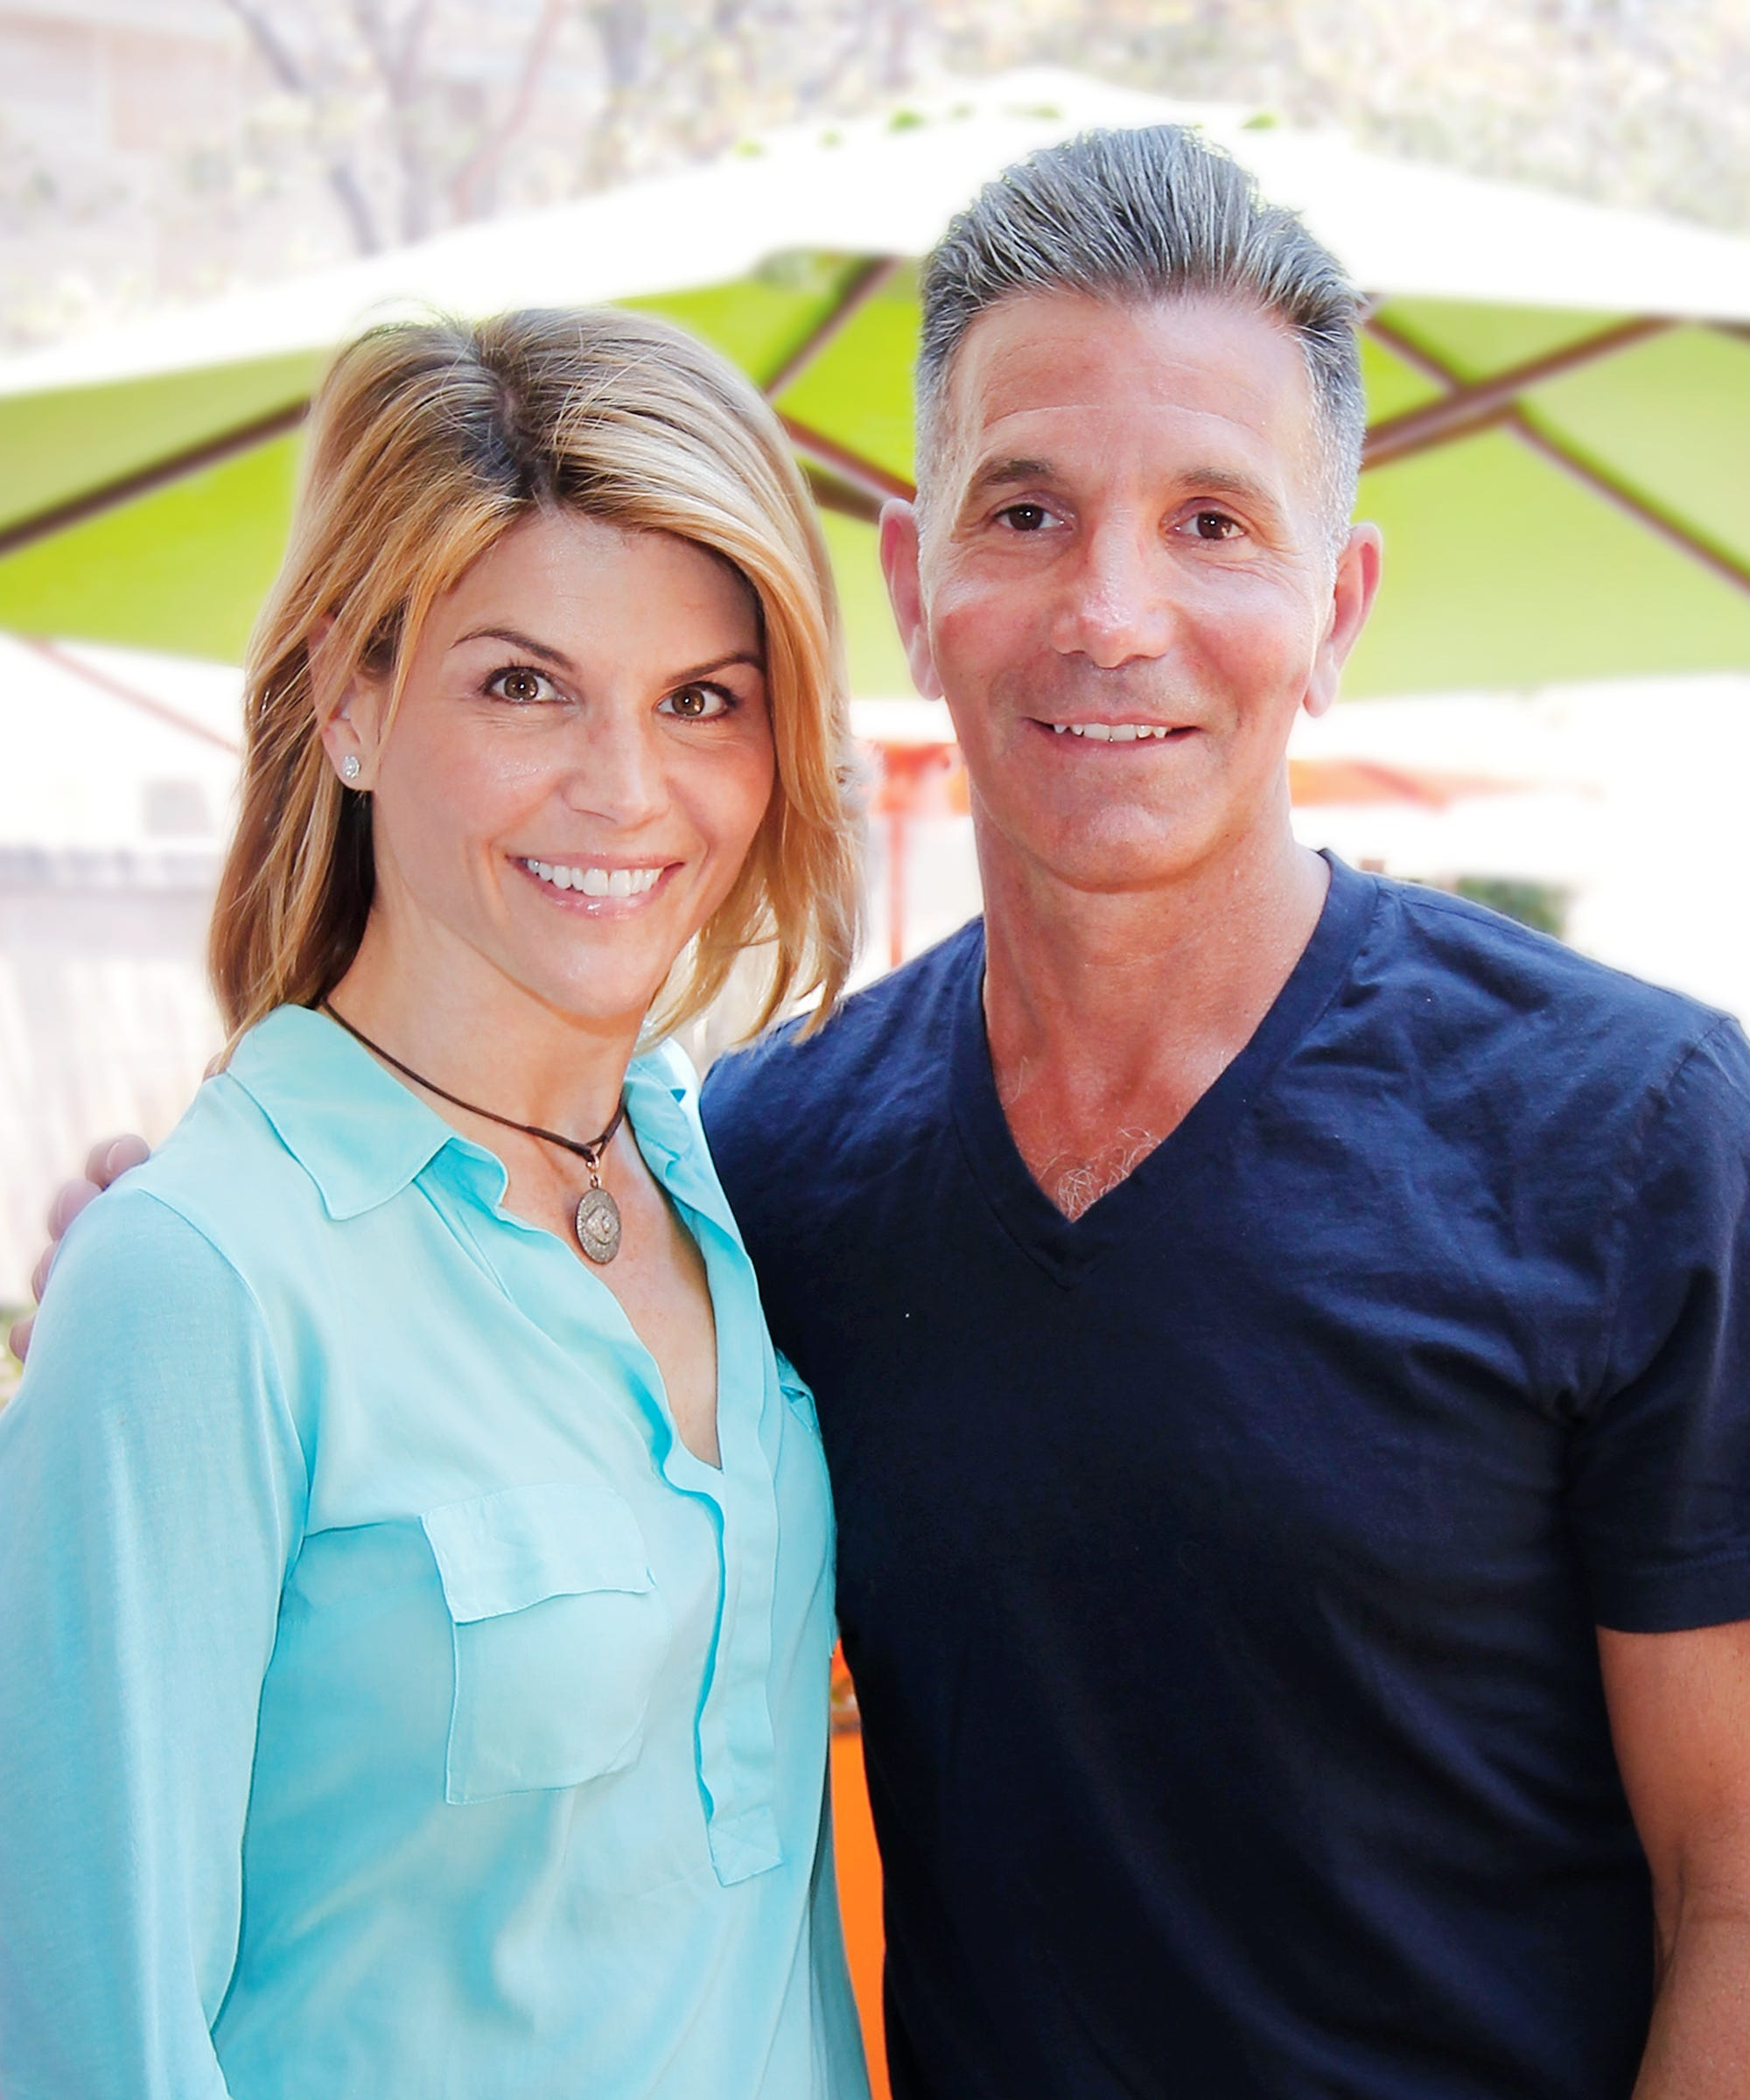 This Is The $35M Mansion Lori Loughlin & Mossimo Giannulli Used To Guarantee Their Bail